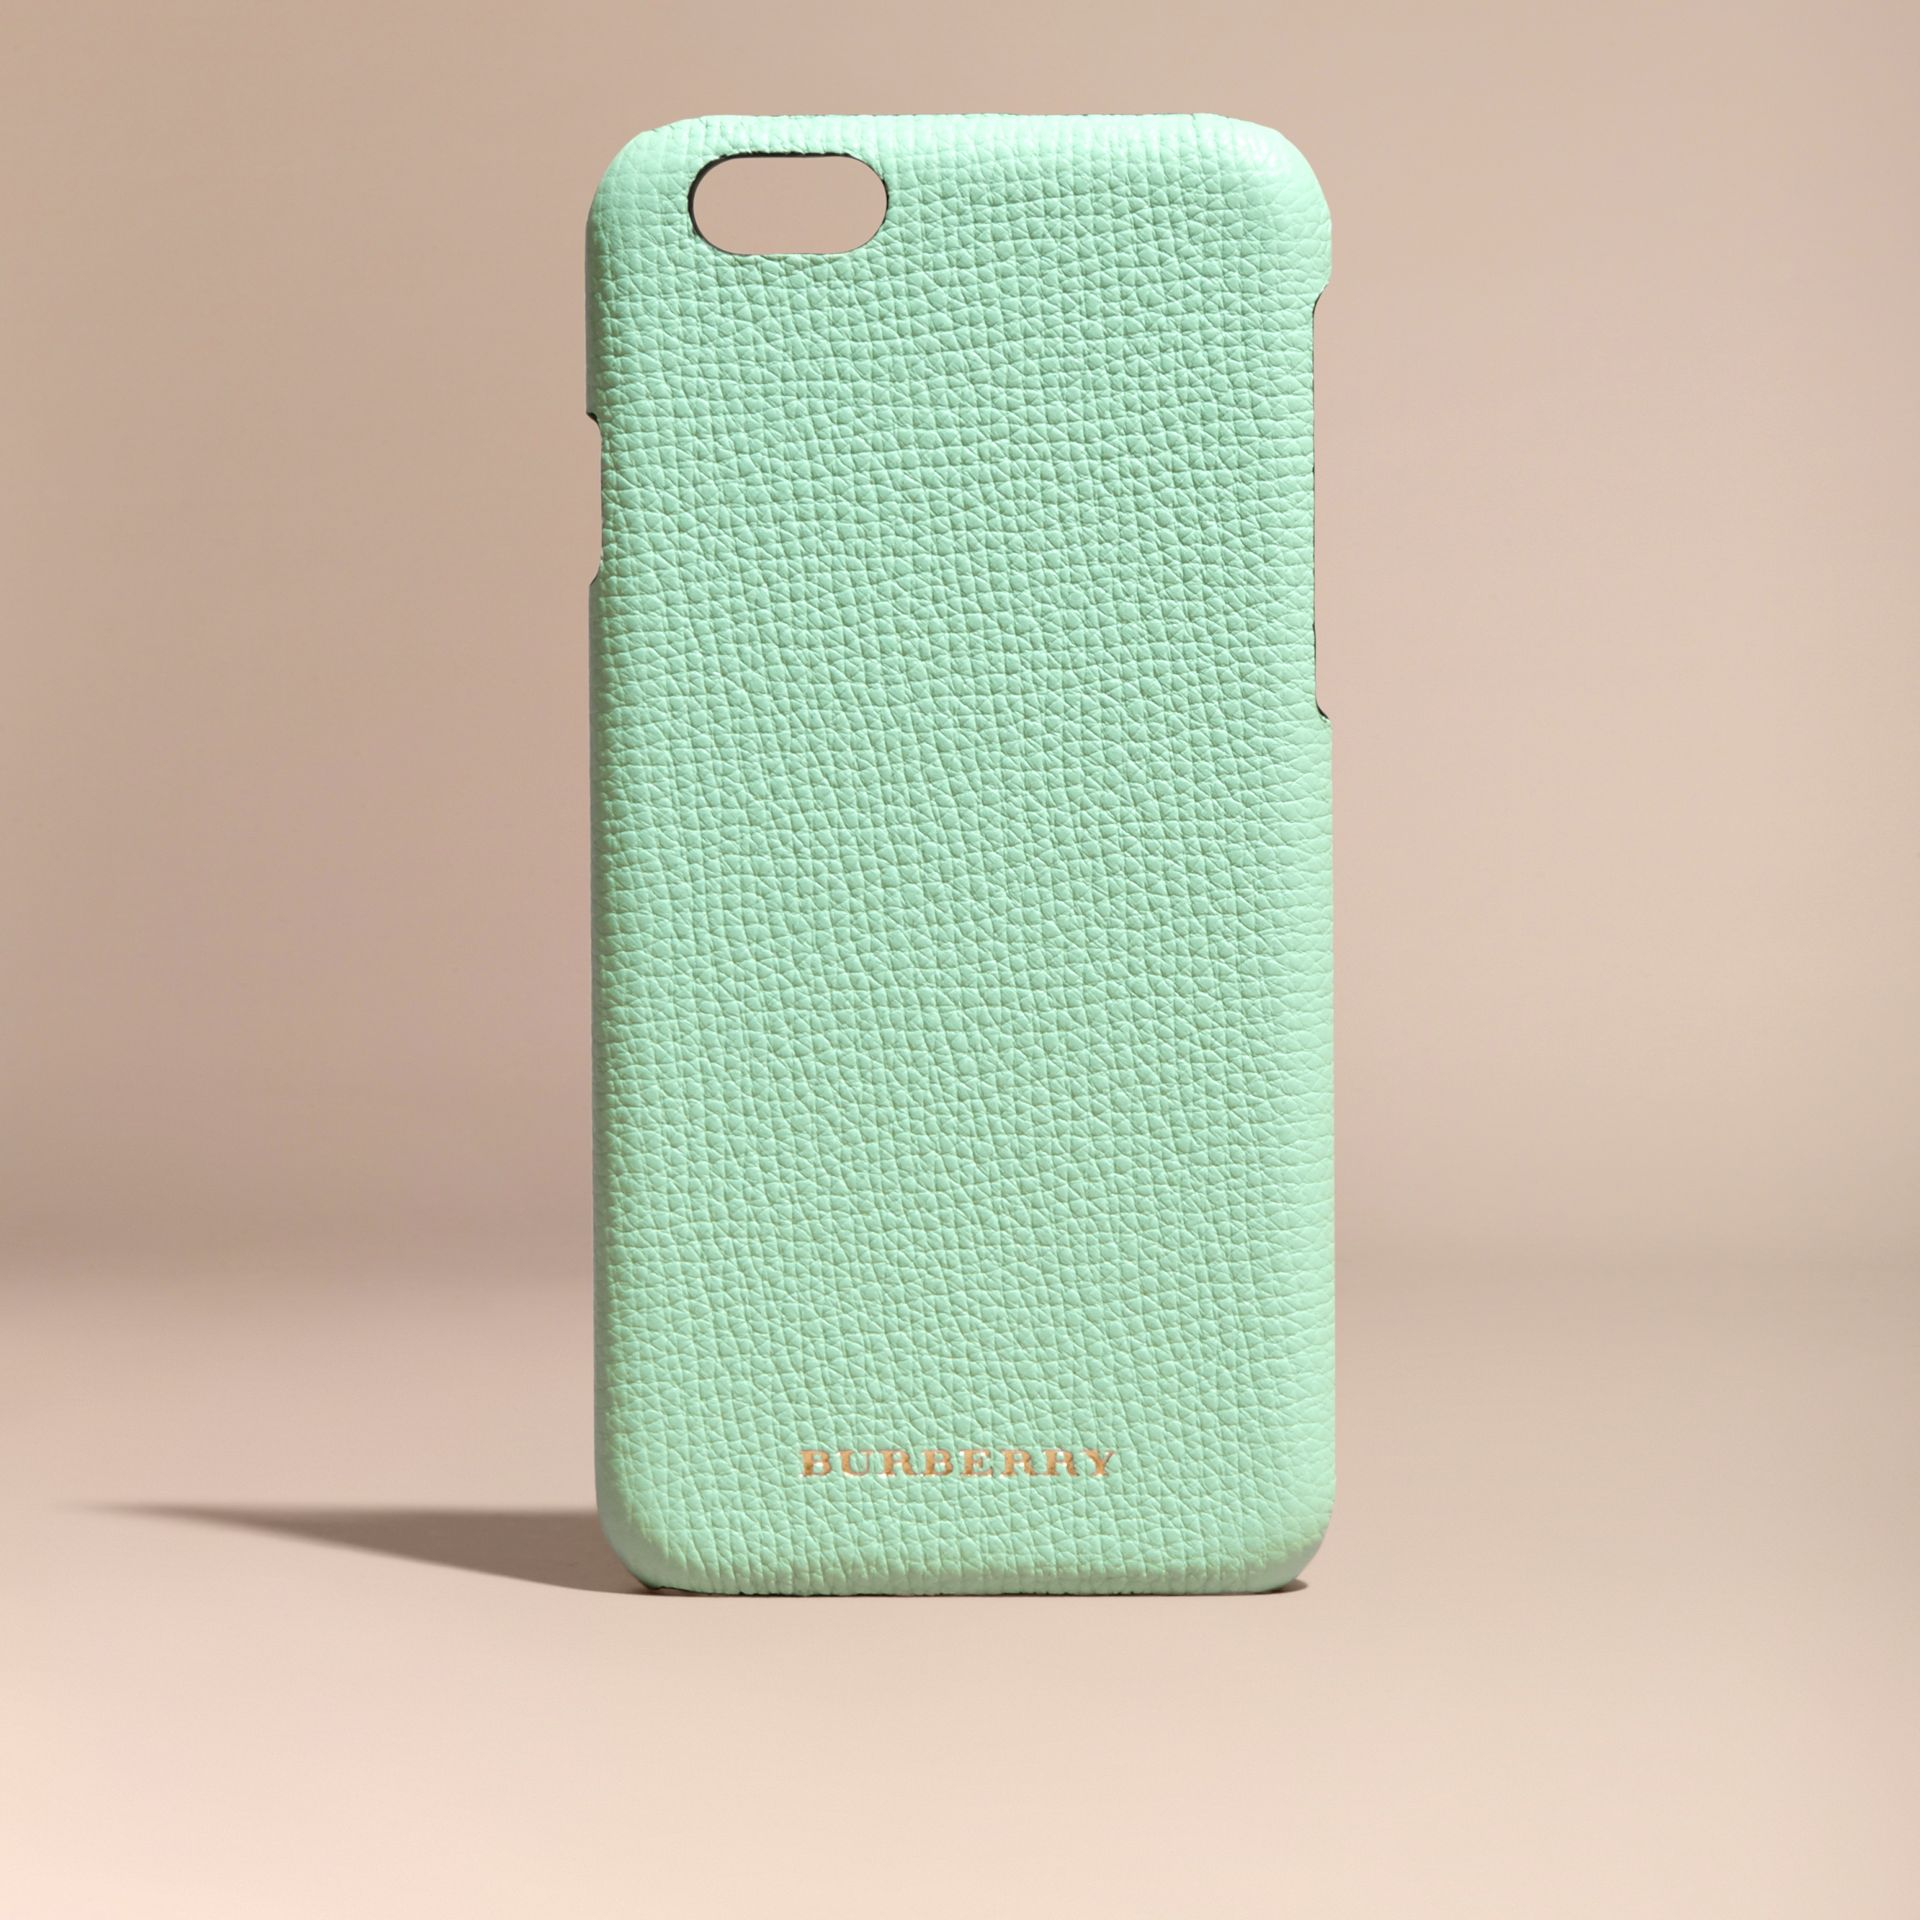 Grainy Leather iPhone 6 Case in Light Mint - Women | Burberry - gallery image 5